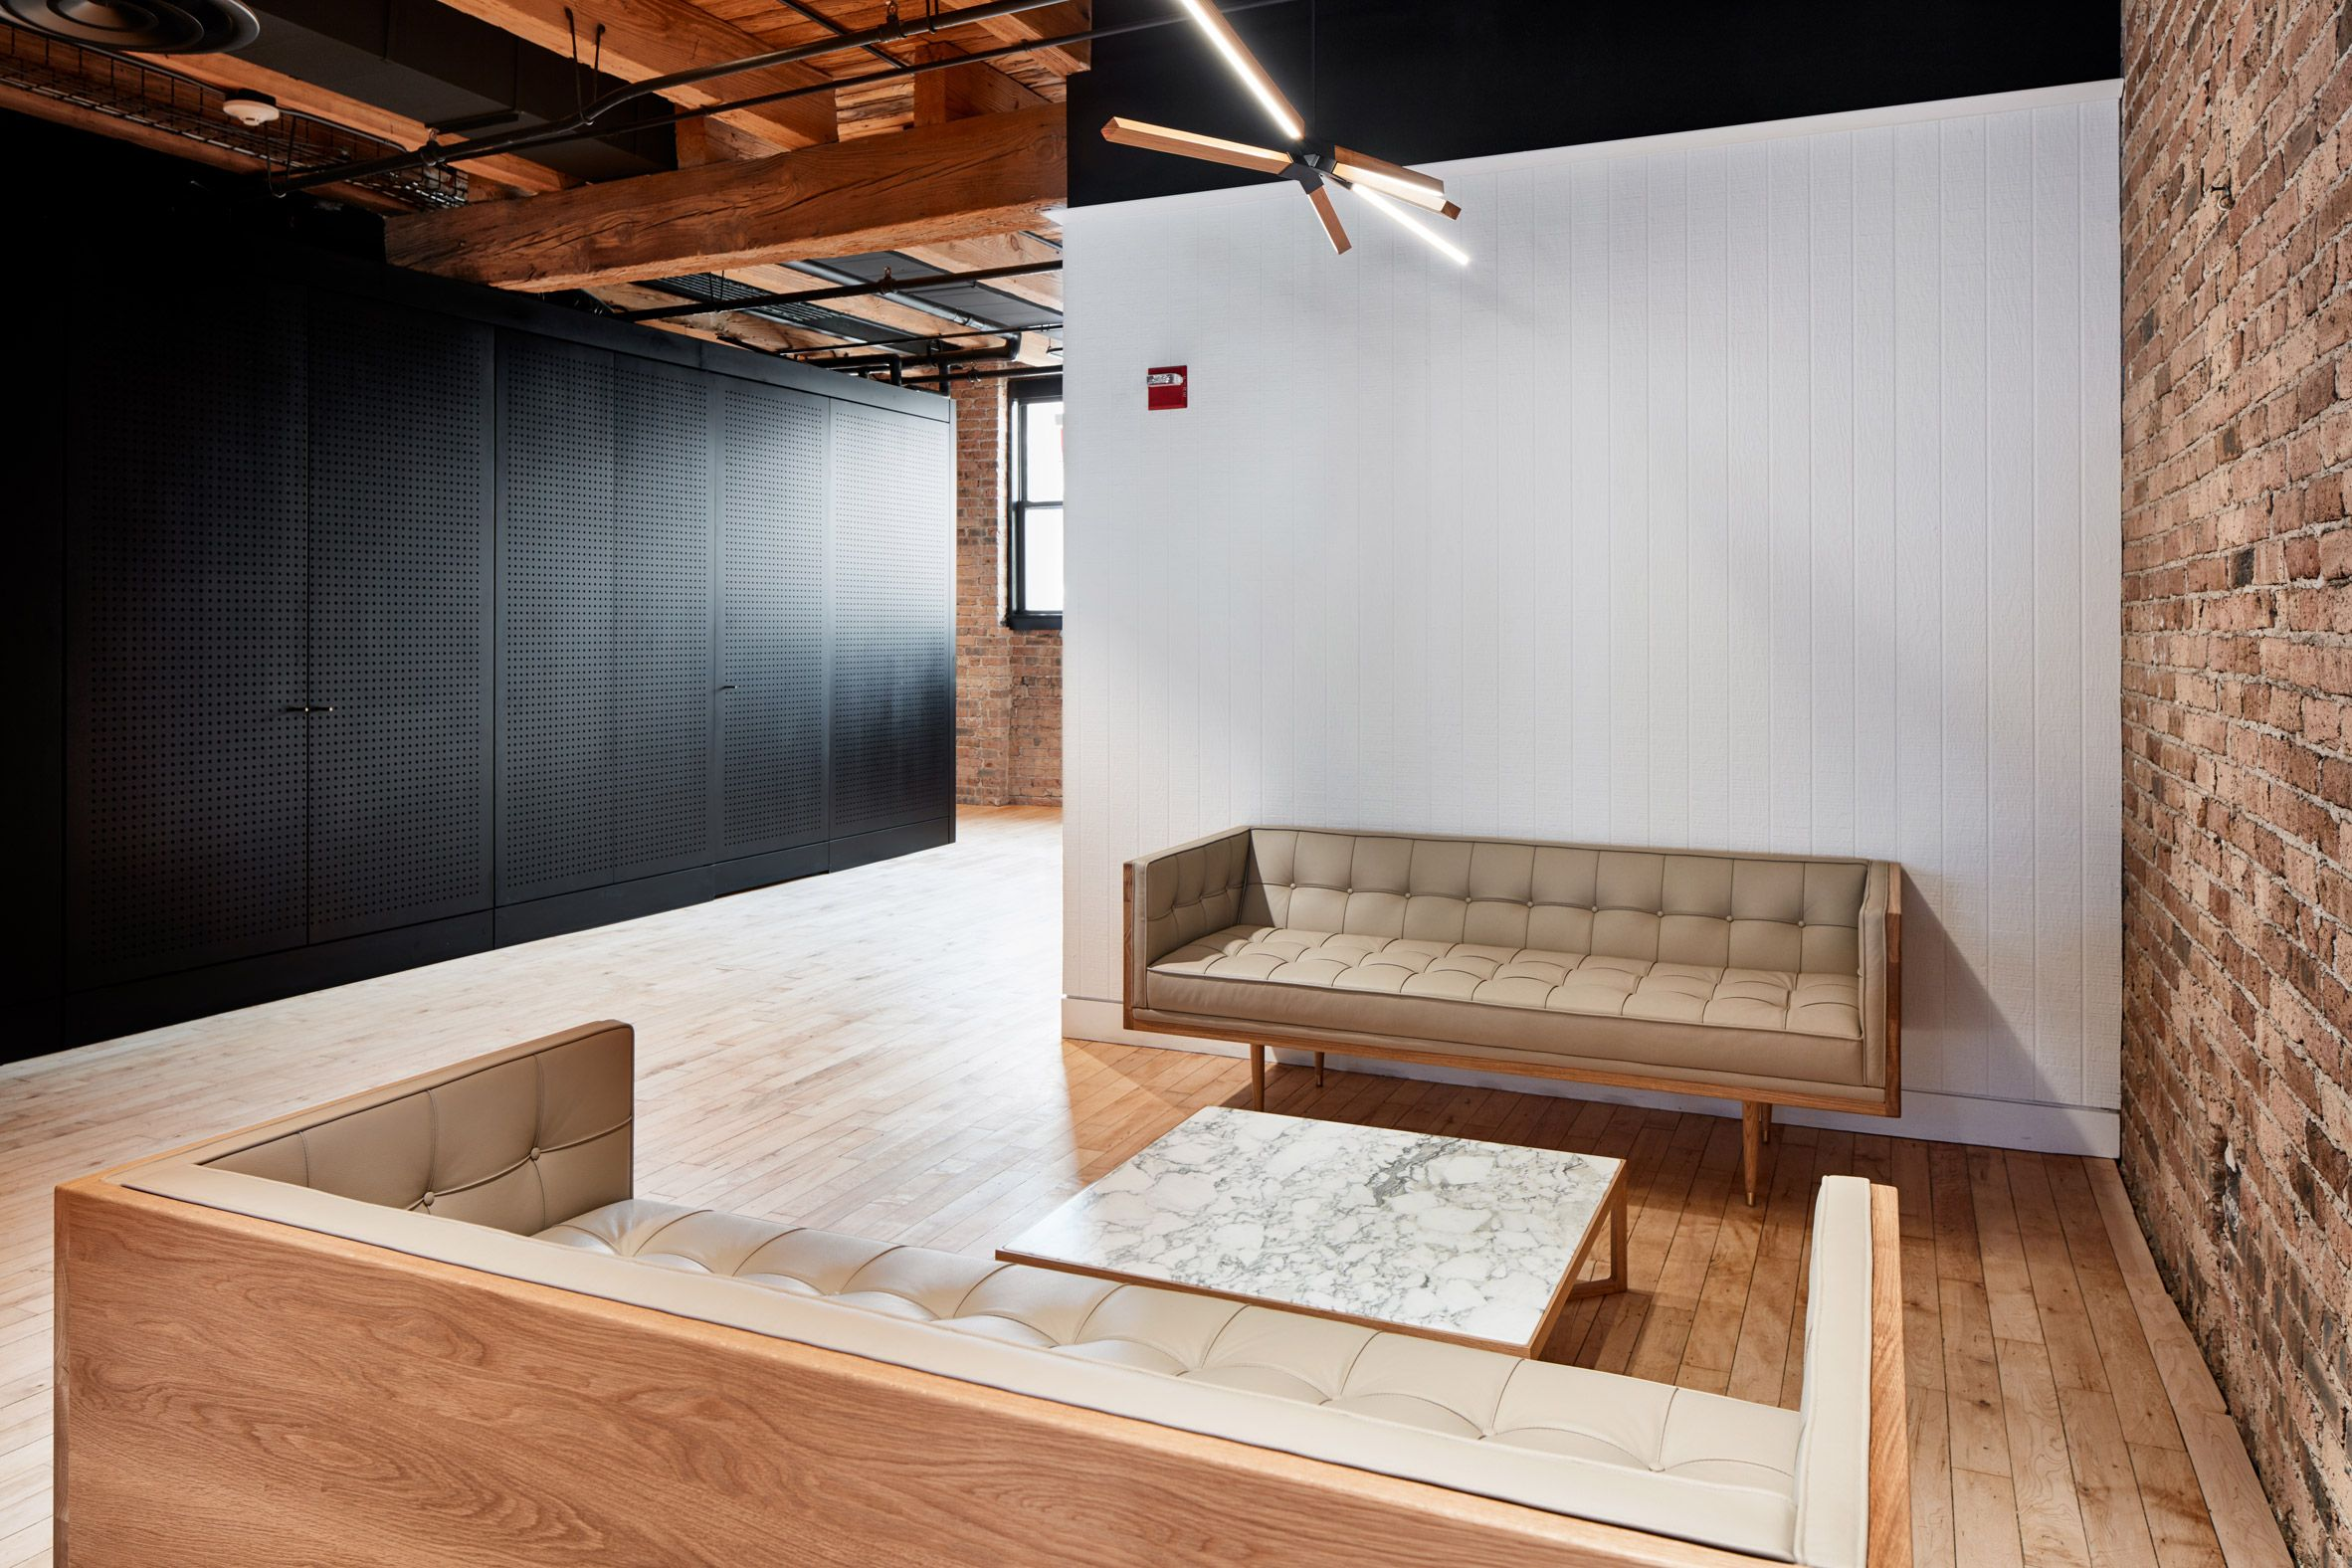 Chicago office by Those Architects has pegboard walls and a batting